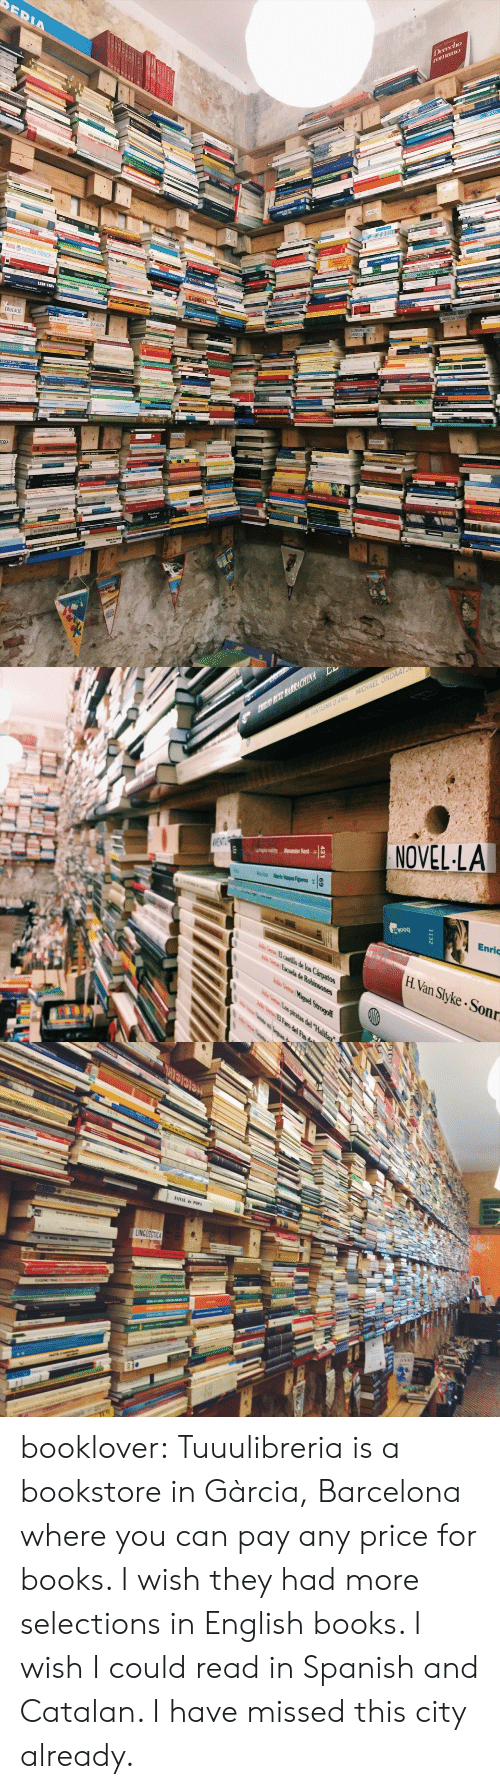 Barcelona, Books, and Pop: Derecho  EDUCACID  ORA   EL  ch  NOVELLA  Enric  H.Van Slyke Sonr   FANAL de POP booklover:  Tuuulibreria is a bookstore in Gàrcia, Barcelona where you can pay any price for books. I wish they had more selections in English books. I wish I could read in Spanish and Catalan. I have missed this city already.